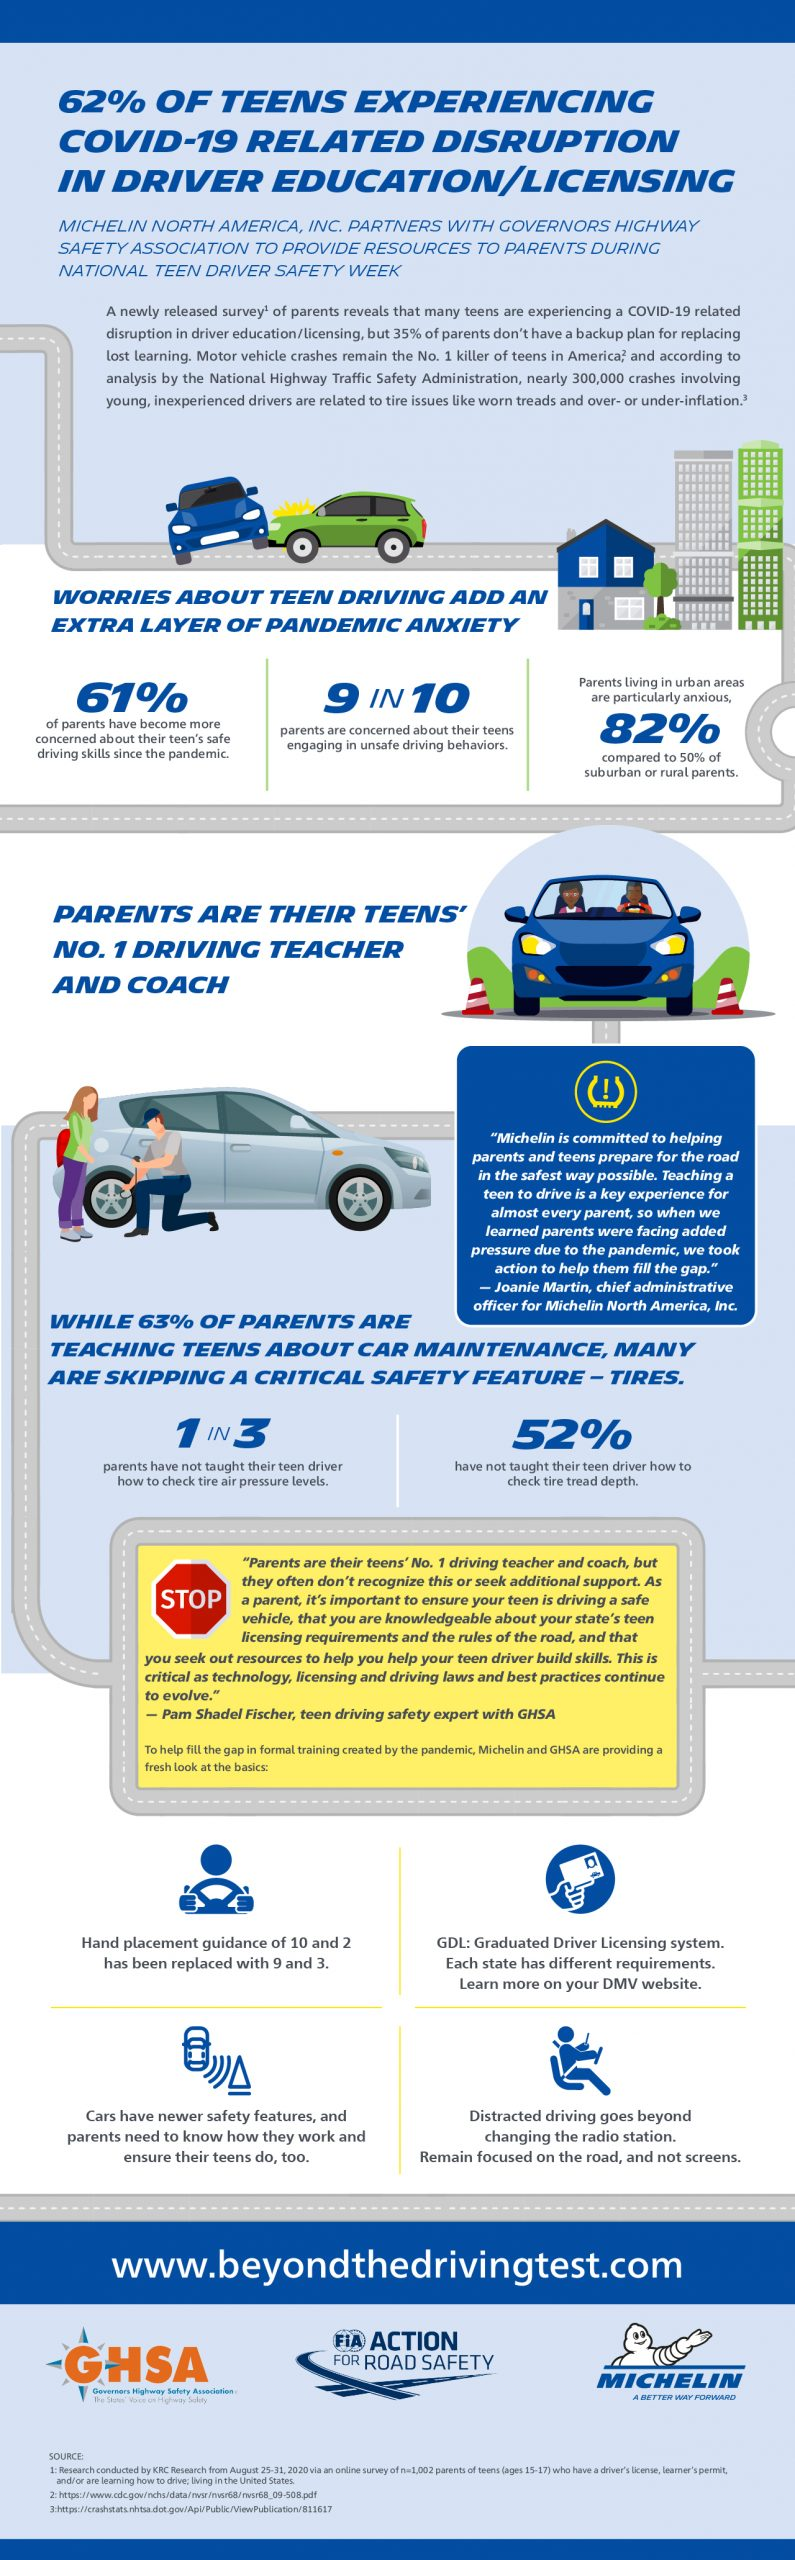 MNA_Beyond_the_Driving_Test_Infographic_101320